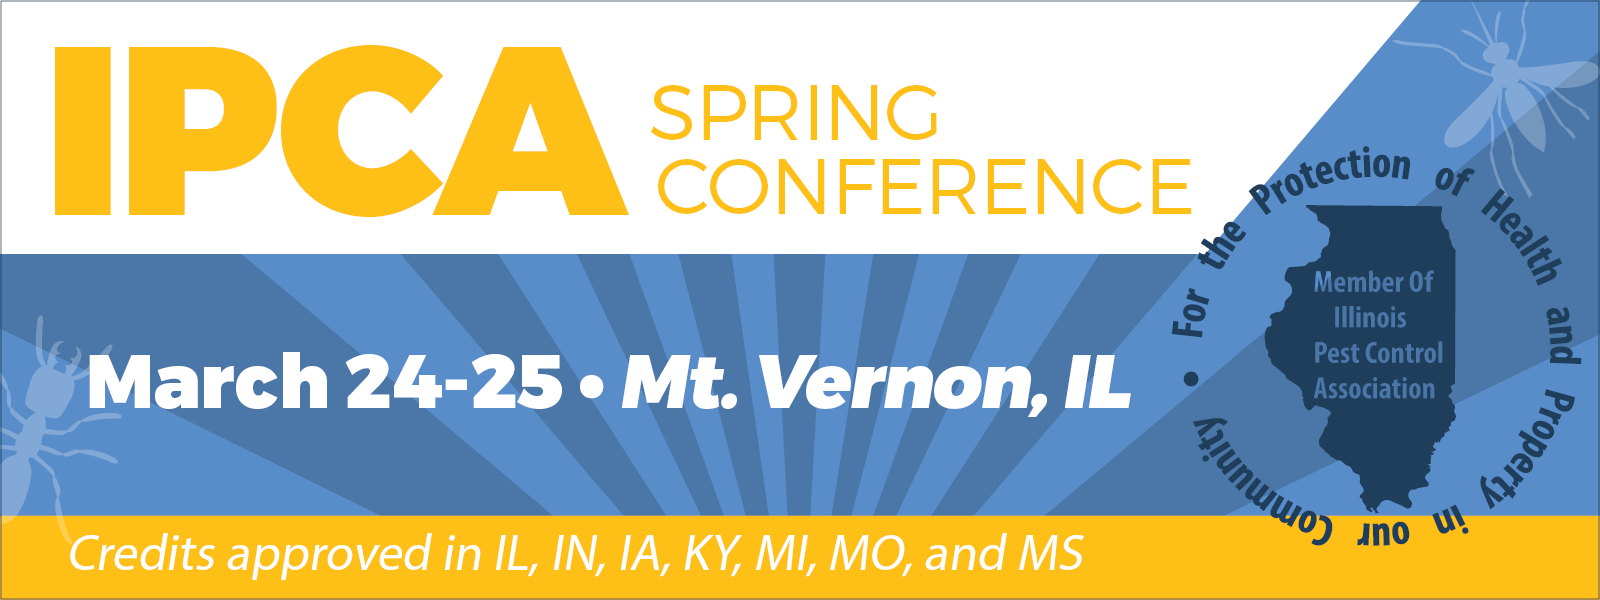 IPCA 2020 Spring Conference